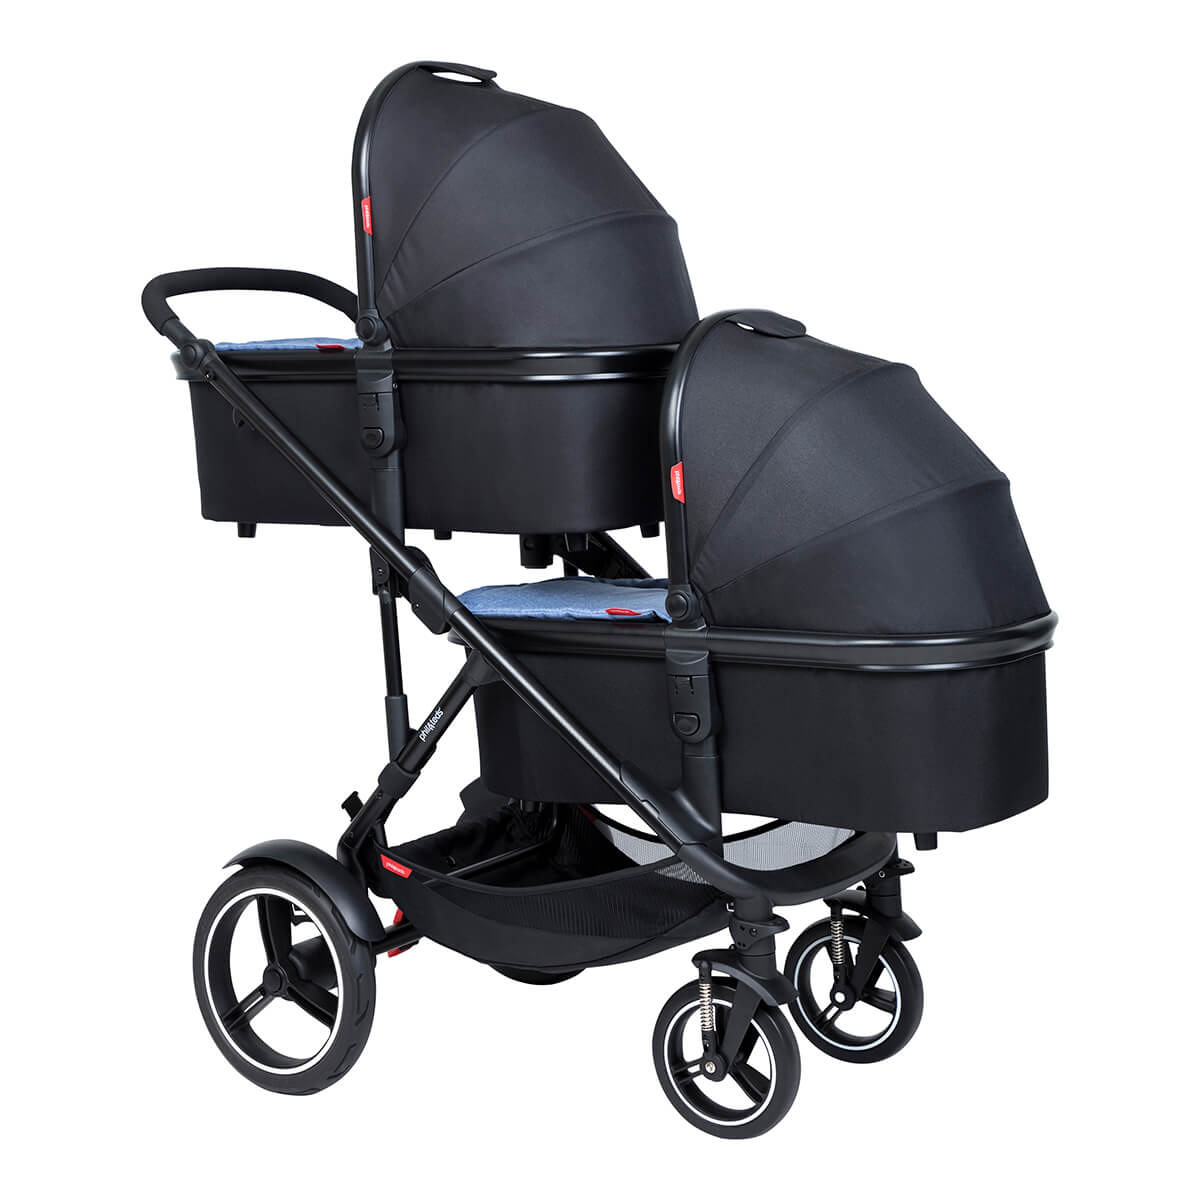 https://cdn.accentuate.io/4390319587424/19440099983544/philteds-voyager-inline-buggy-with-double-snug-carrycots-v1626488673970.jpg?1200x1200